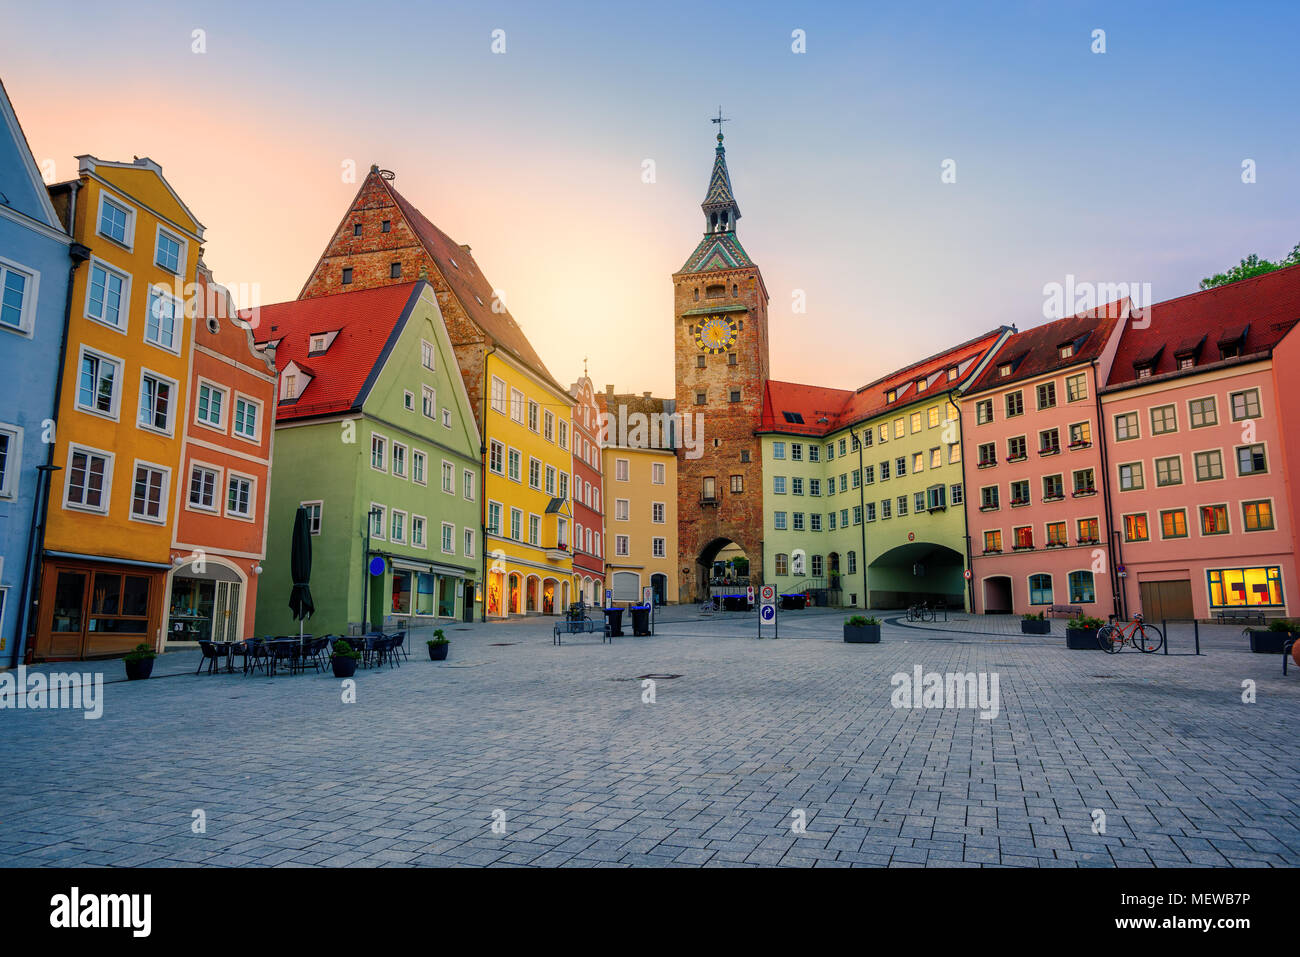 Traditional colorful houses in Landsberg am Lech historical gothic Old Town, Bavaria, Germany, in sunset light Stock Photo